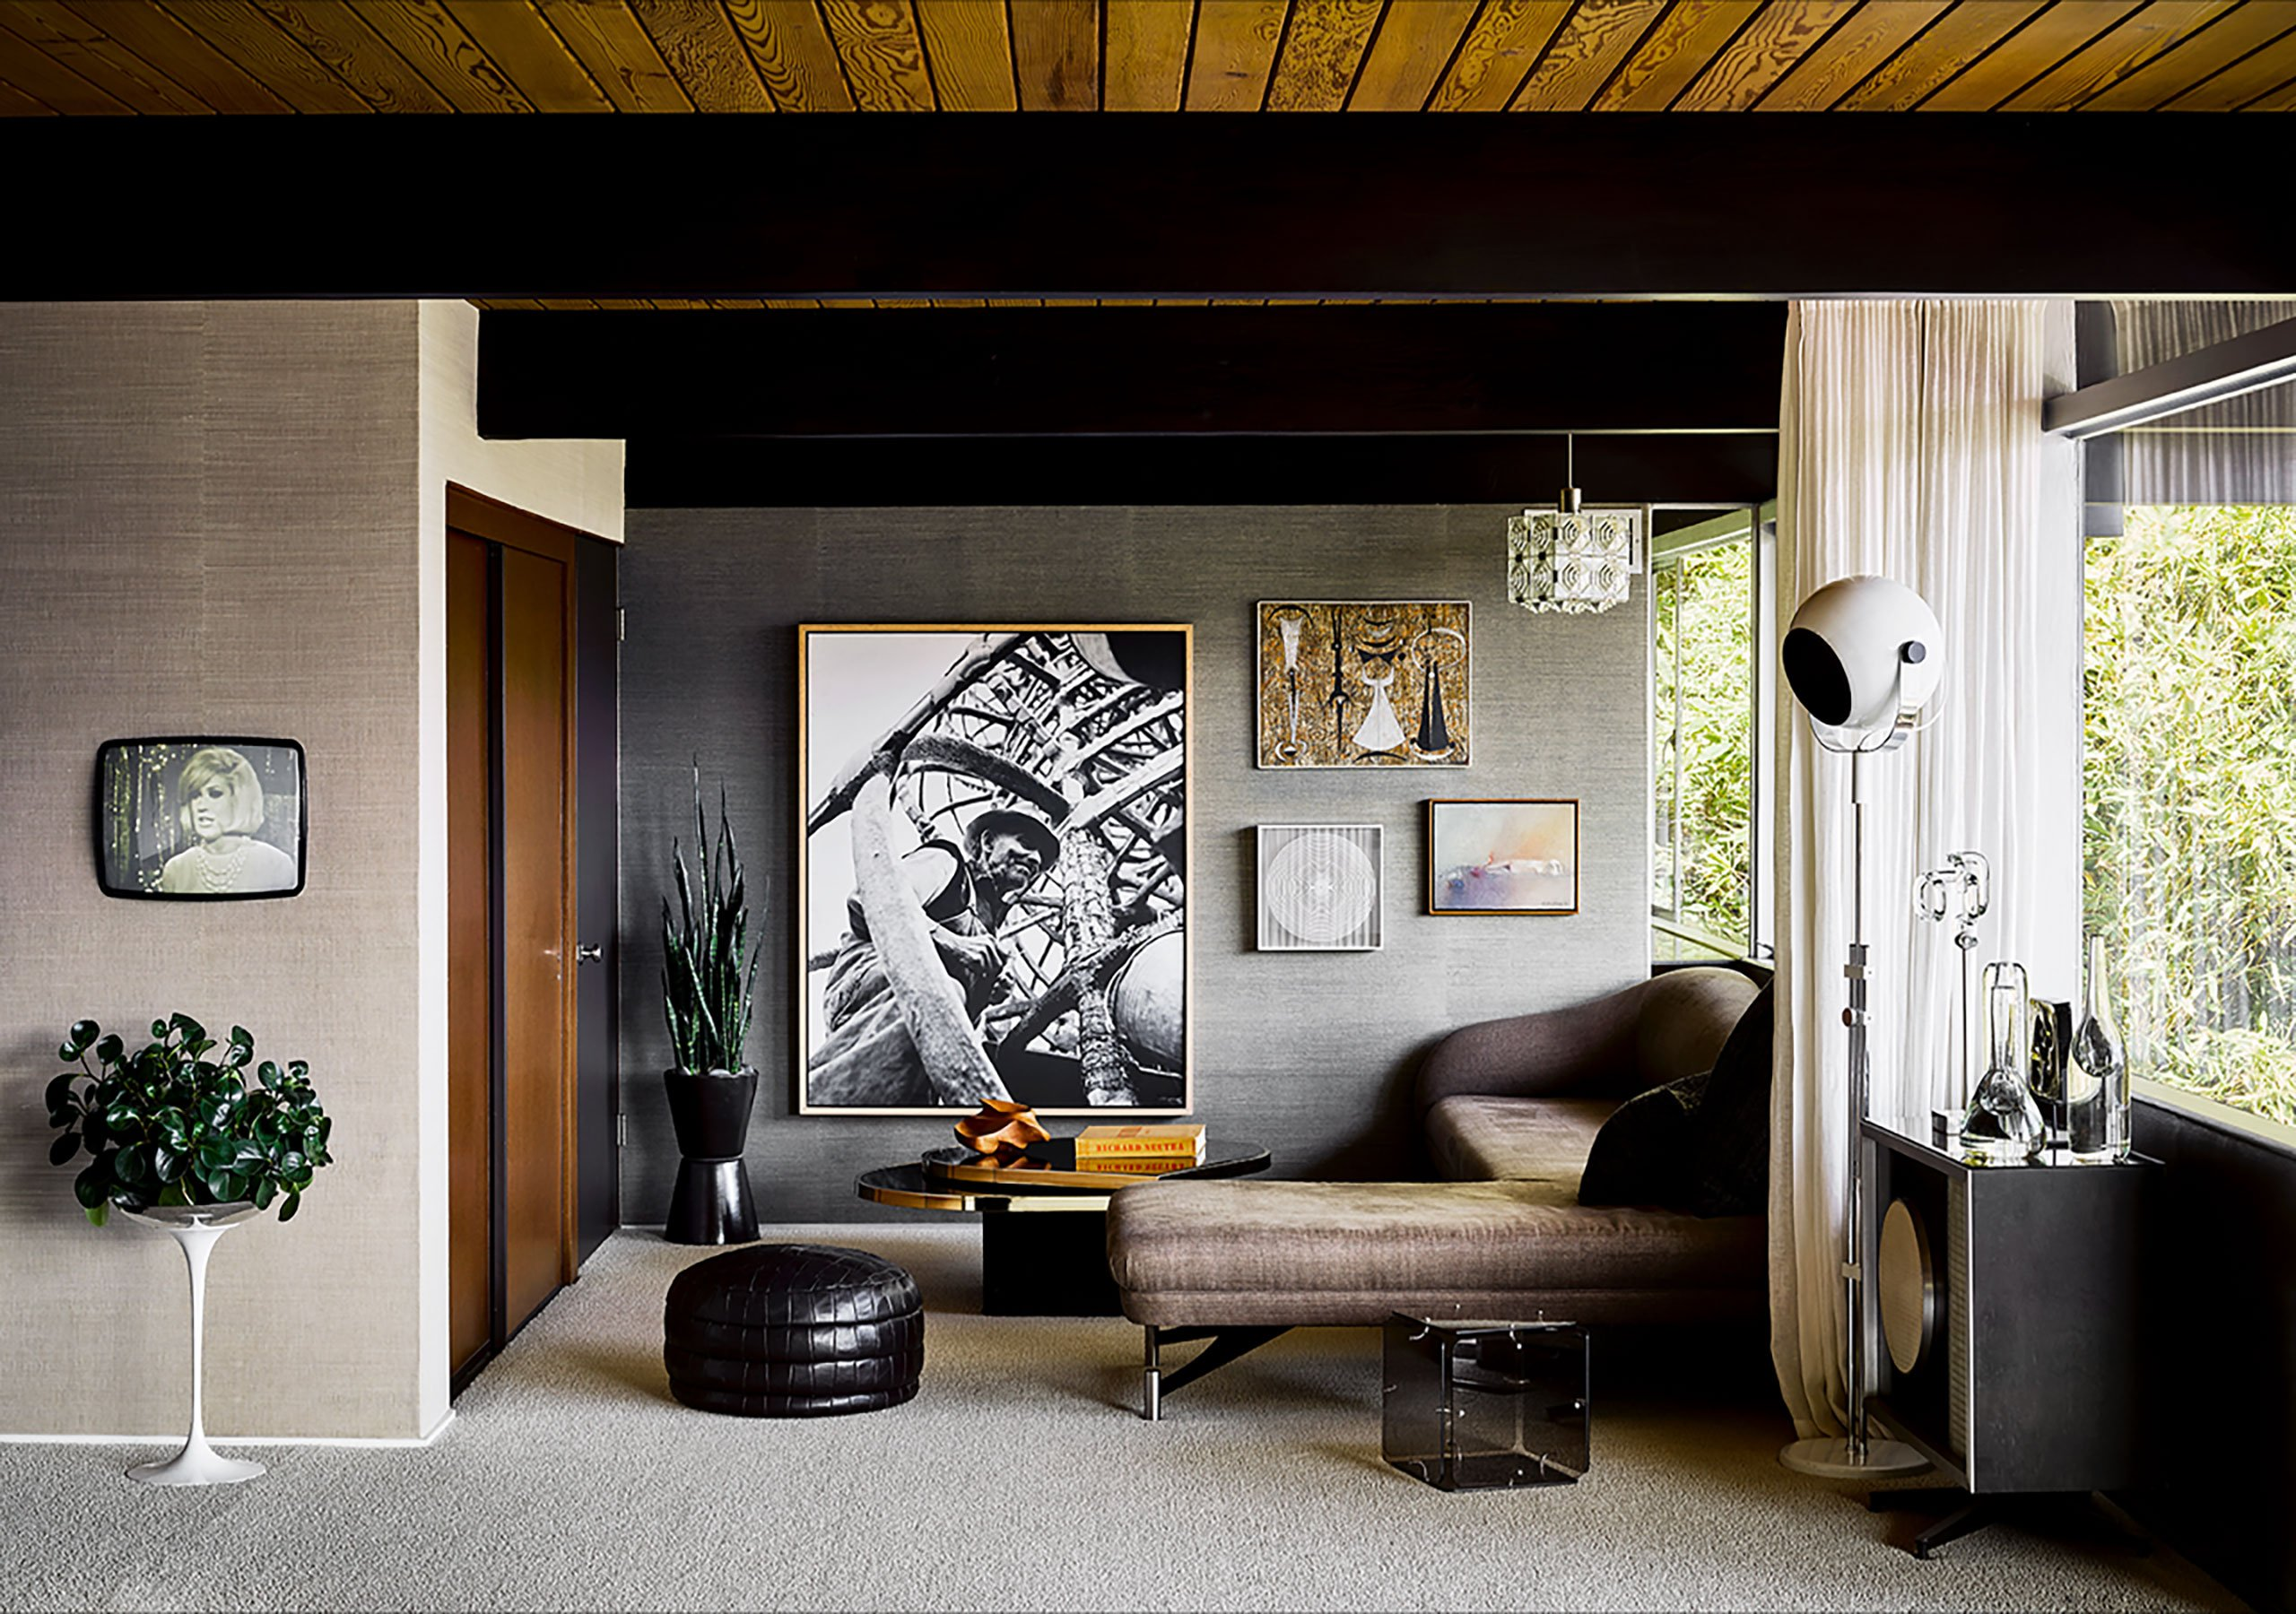 Photography by Douglas Friedman. Featured: Swan sofa by Vladimir Kagan; original built-in TV, Eames Speaker used as side table; glass cube table by Gerard McCabe; leather patchwork ottoman by DeSede.